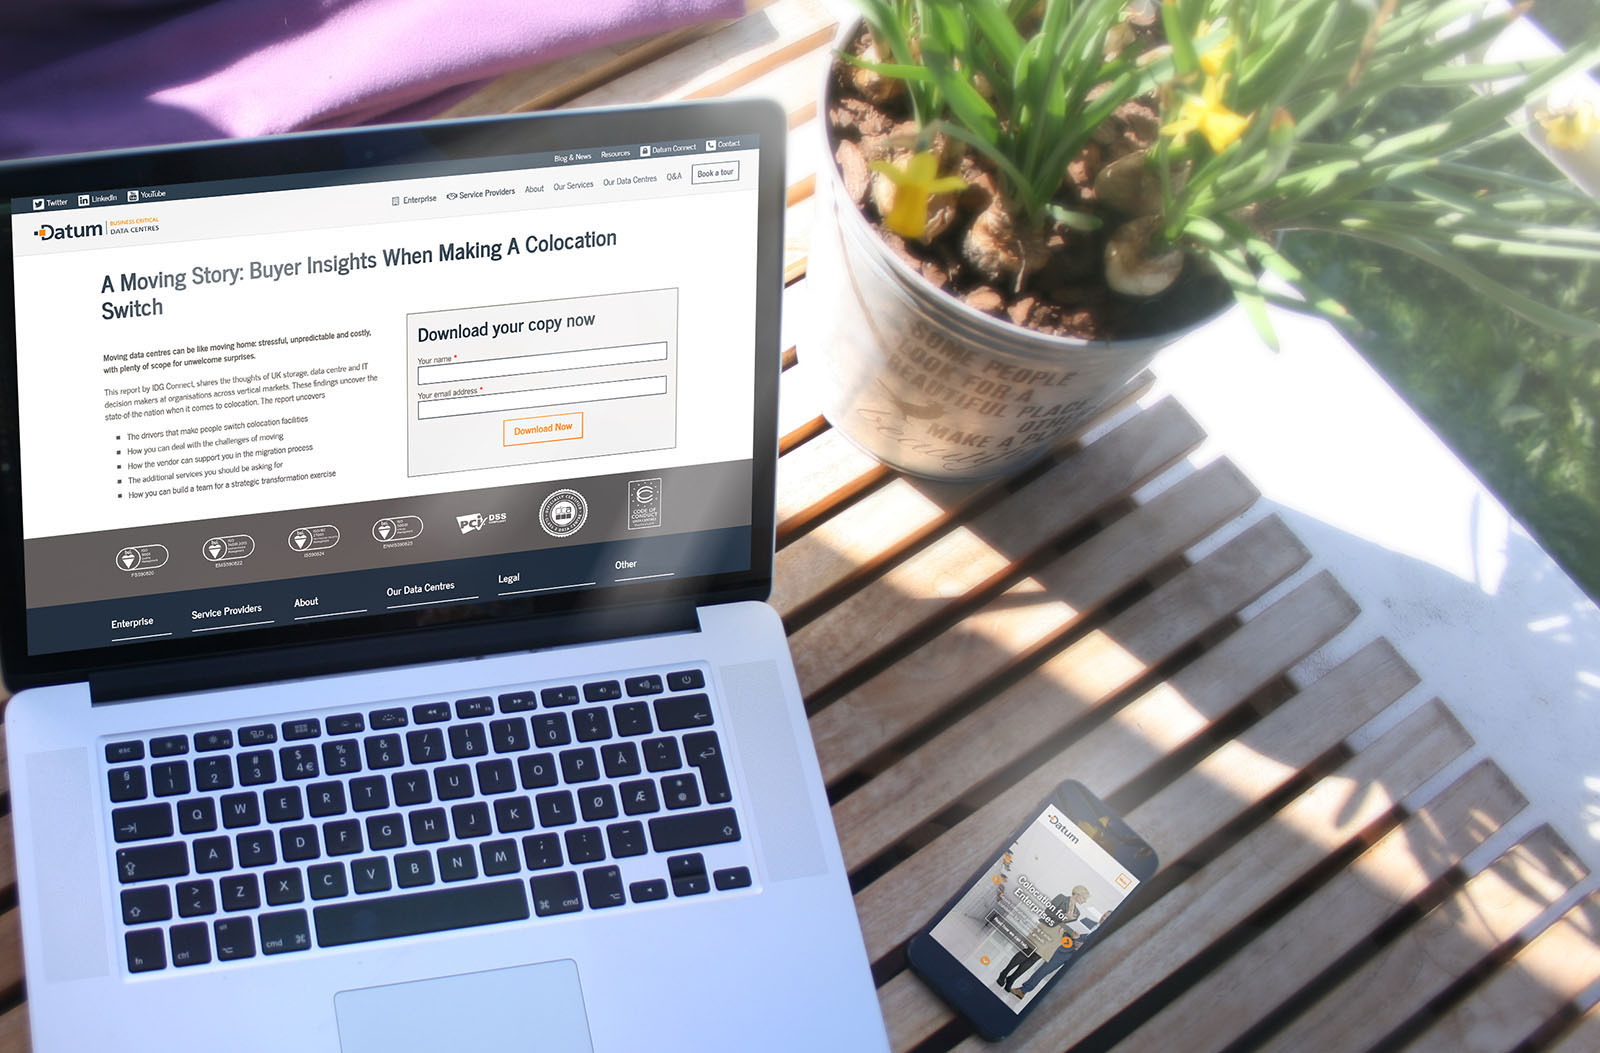 An example of a custom landing page shown on an Apple MacBook outside on a bench next to a flower pot.